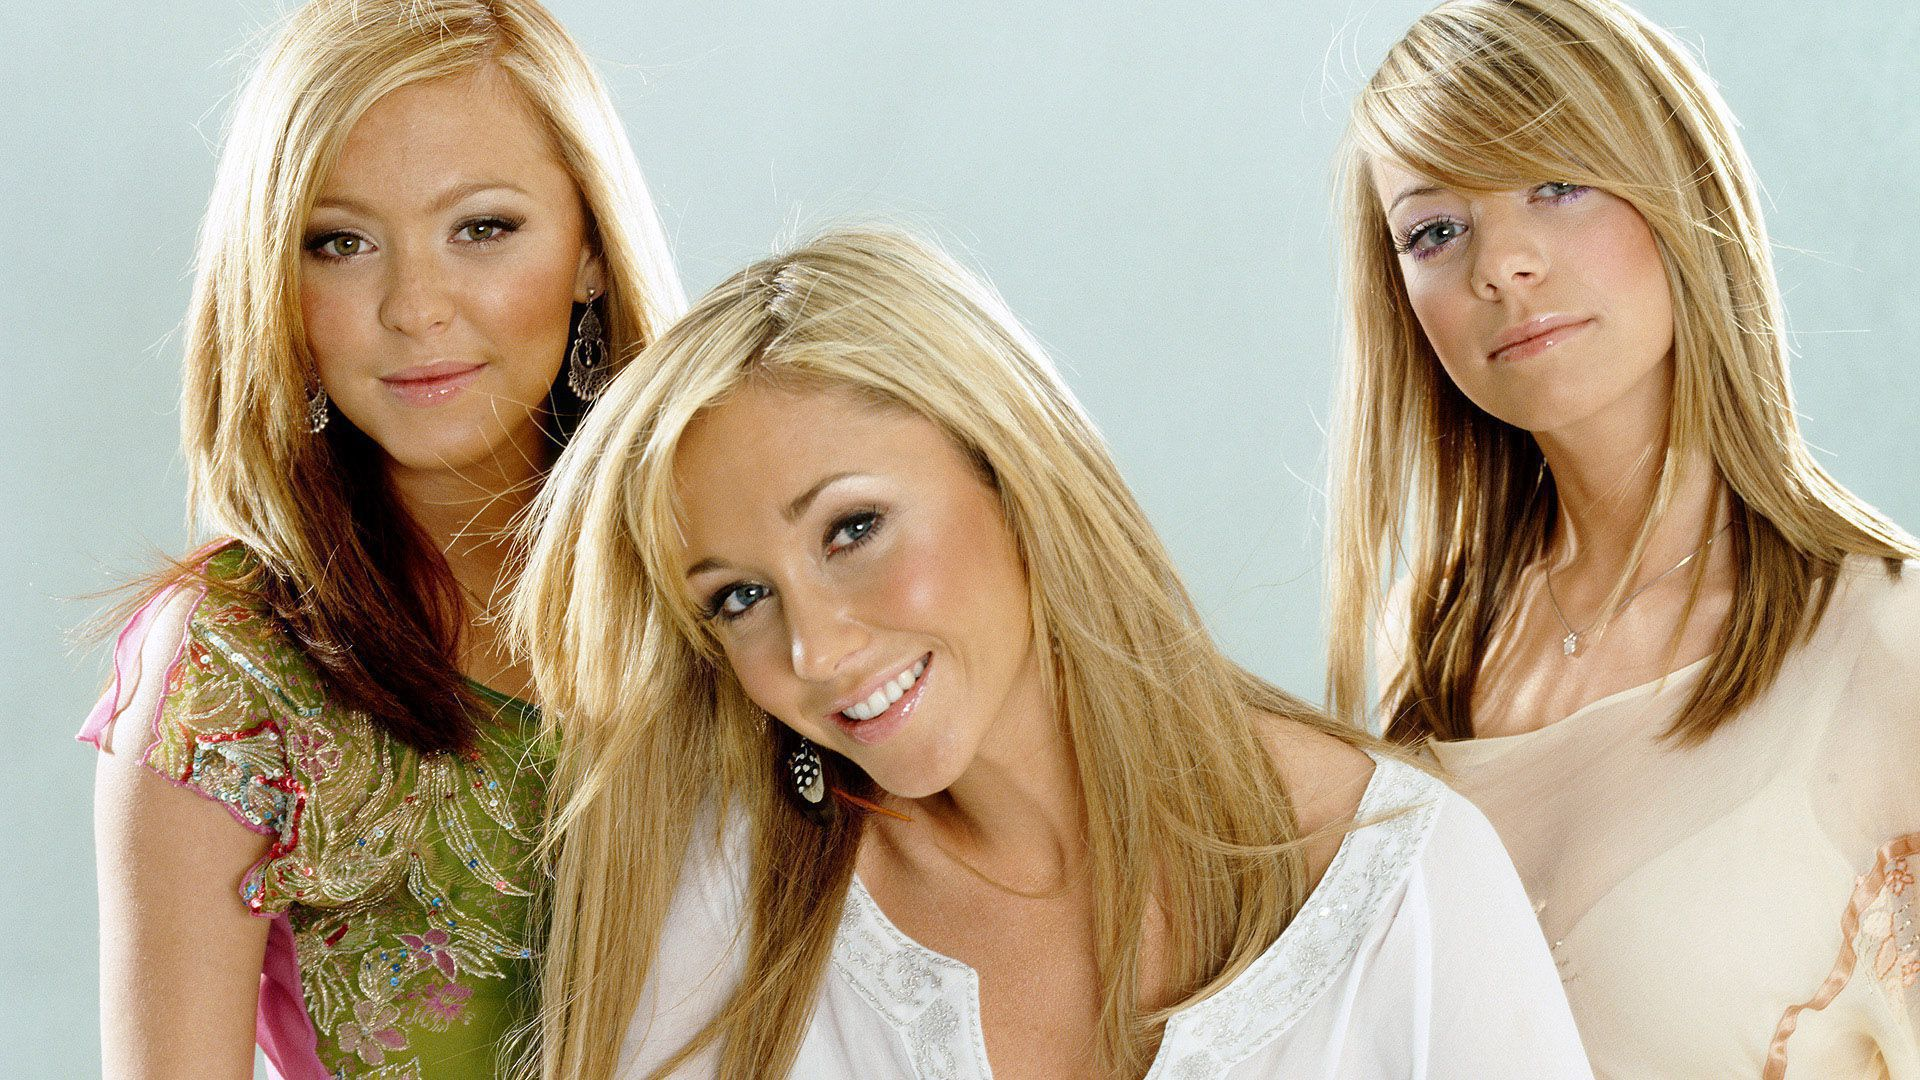 Atomic Kitten Wallpaper Pack